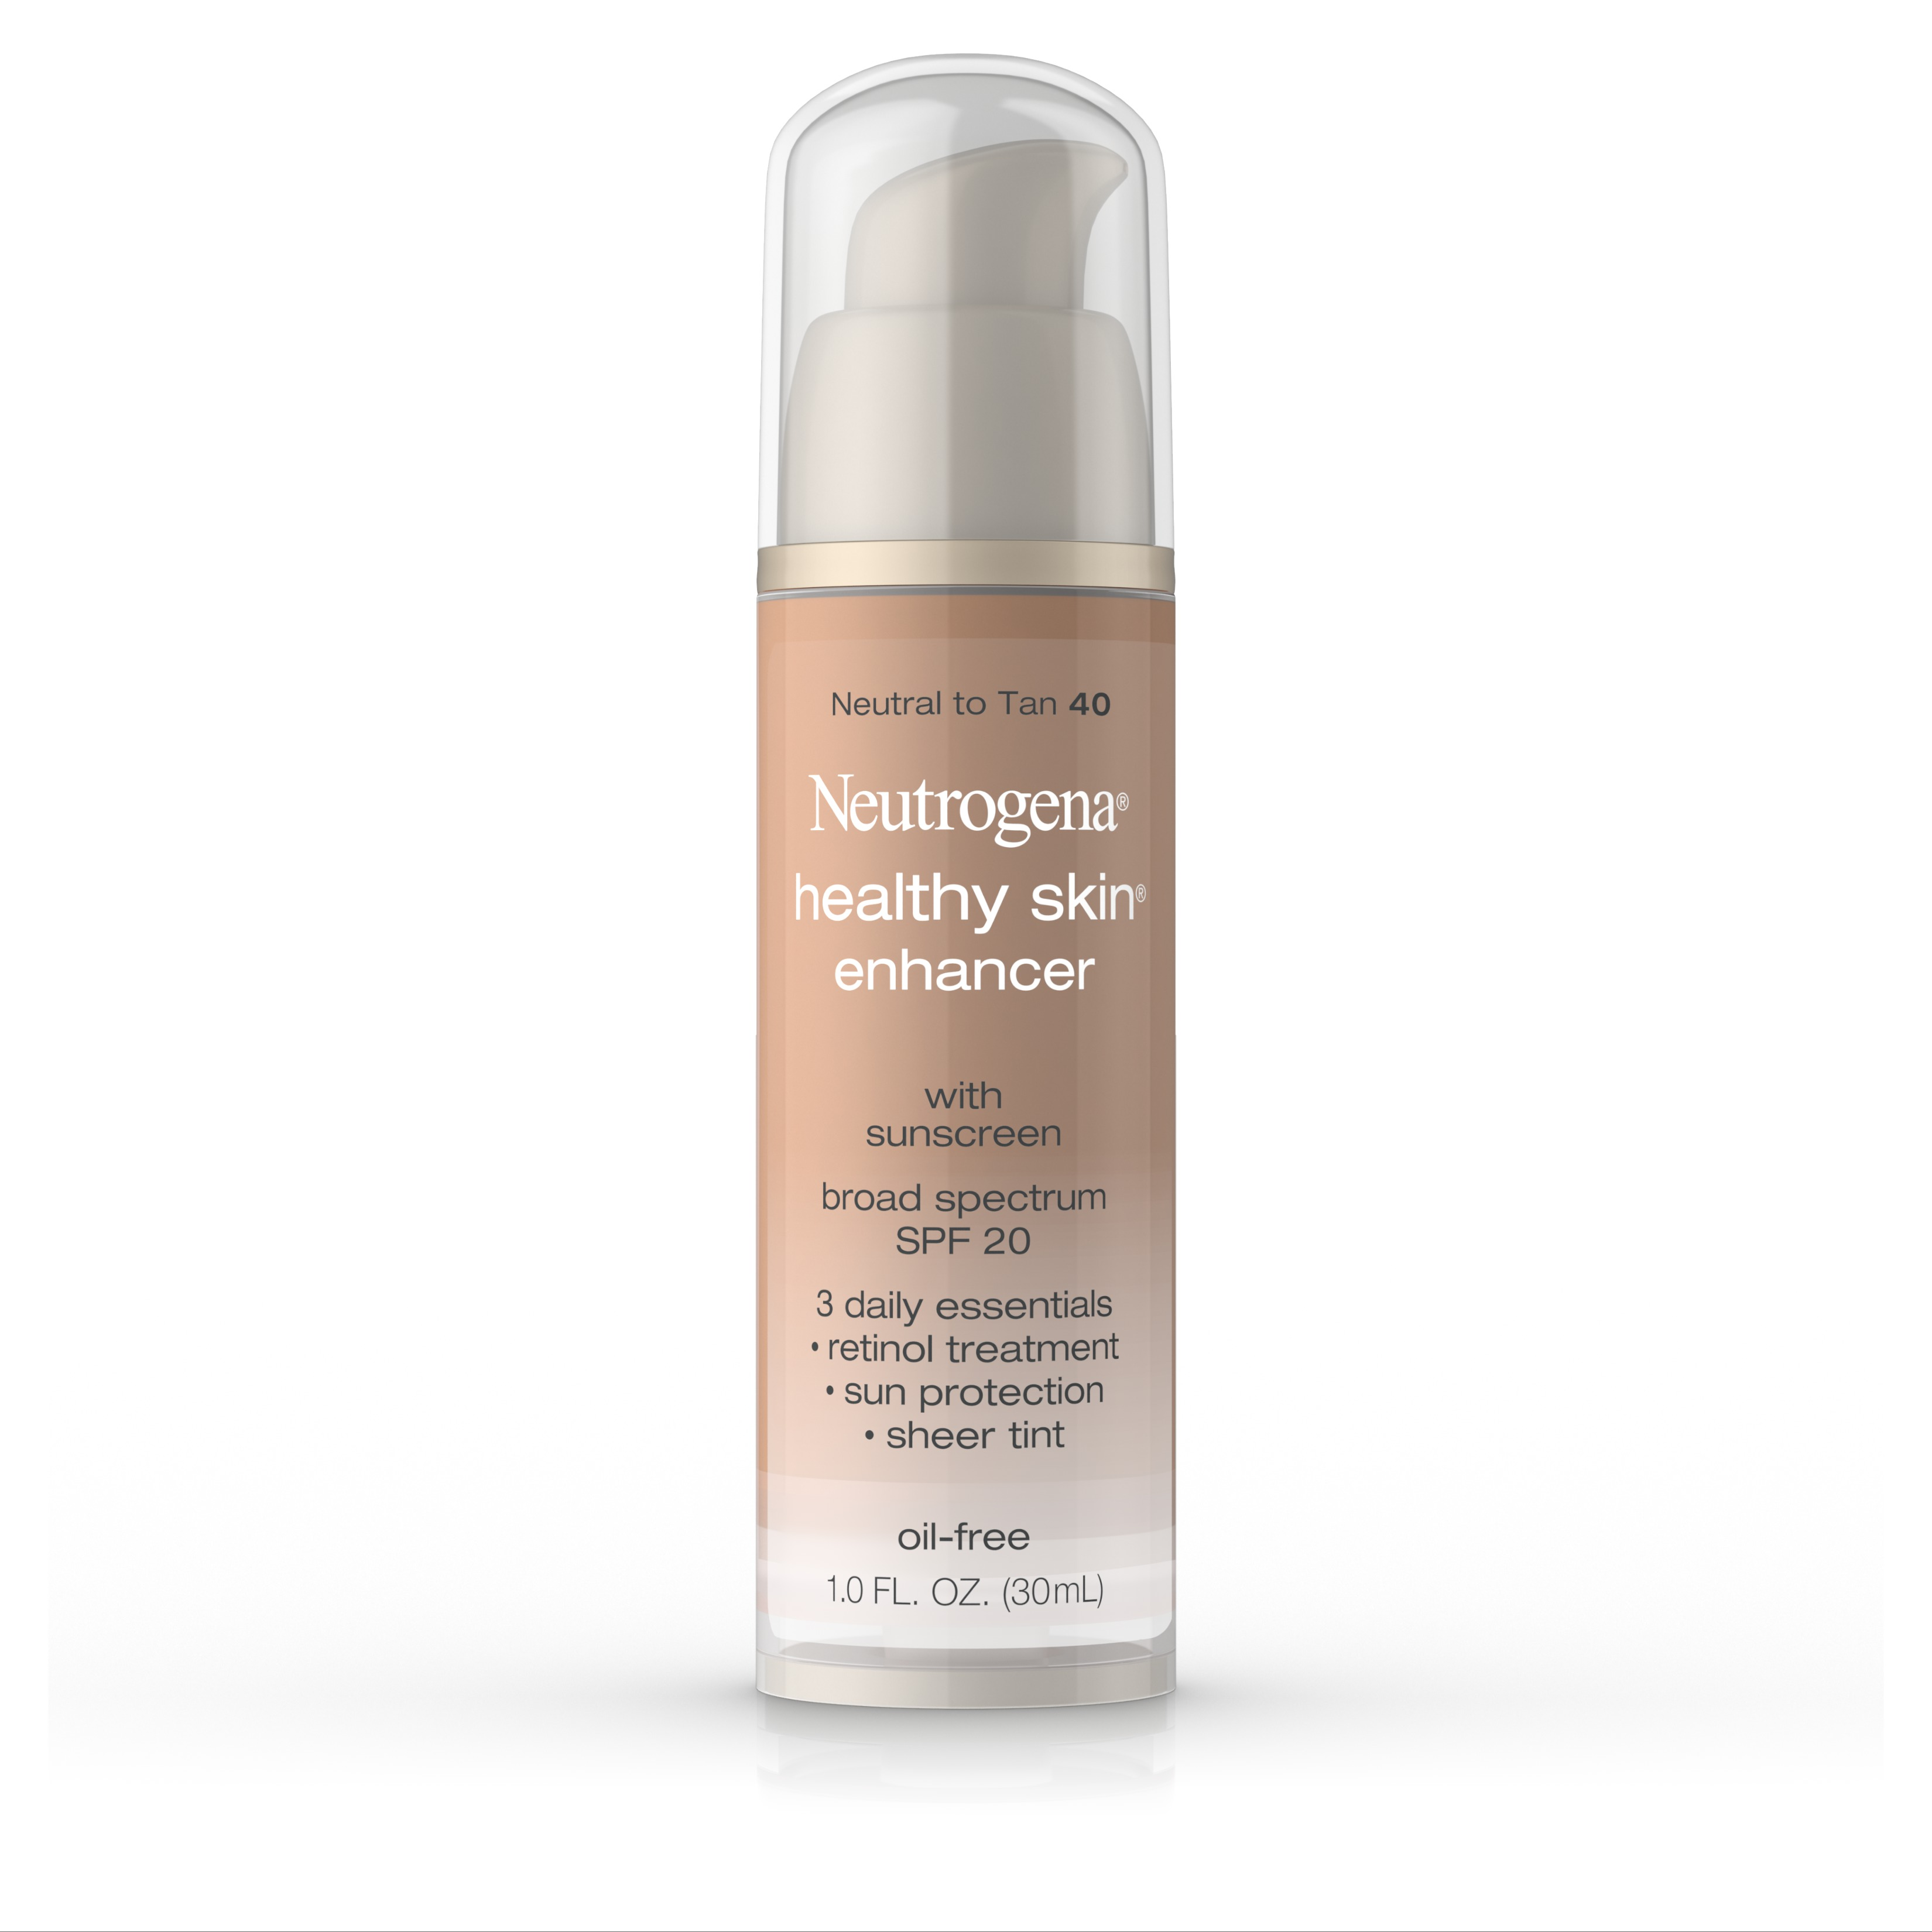 Neutrogena Healthy Skin Enhancer Broad Spectrum SPF 20, Neutral To Tan 40, 1 Fl. Oz - Walmart.com